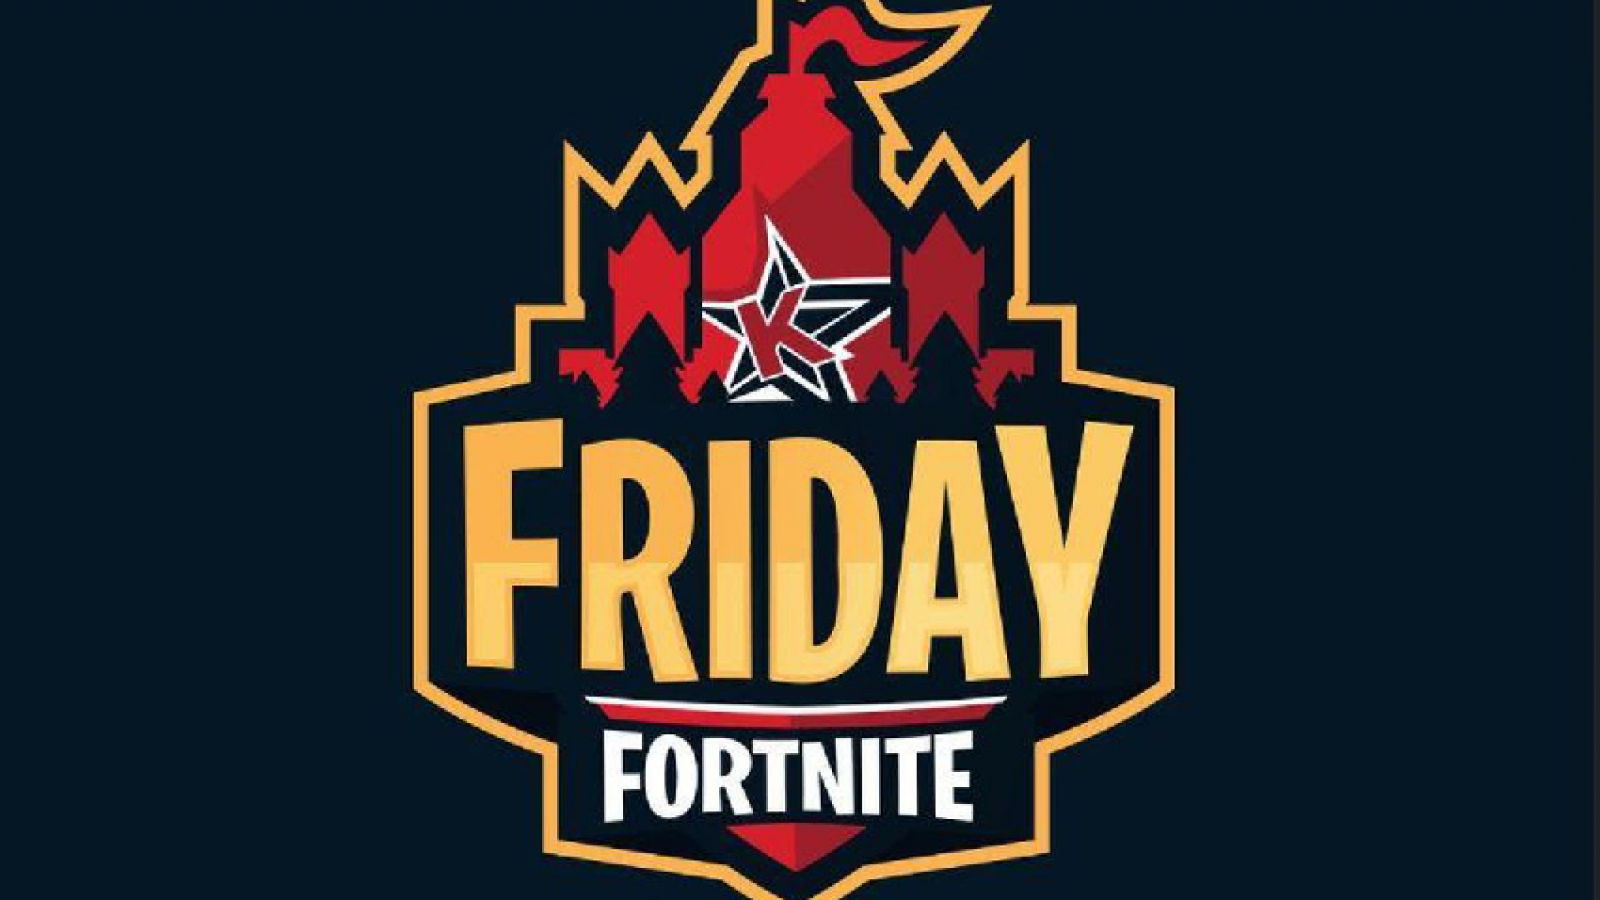 Friday Fortnite Tournament May Return Due to High Demand